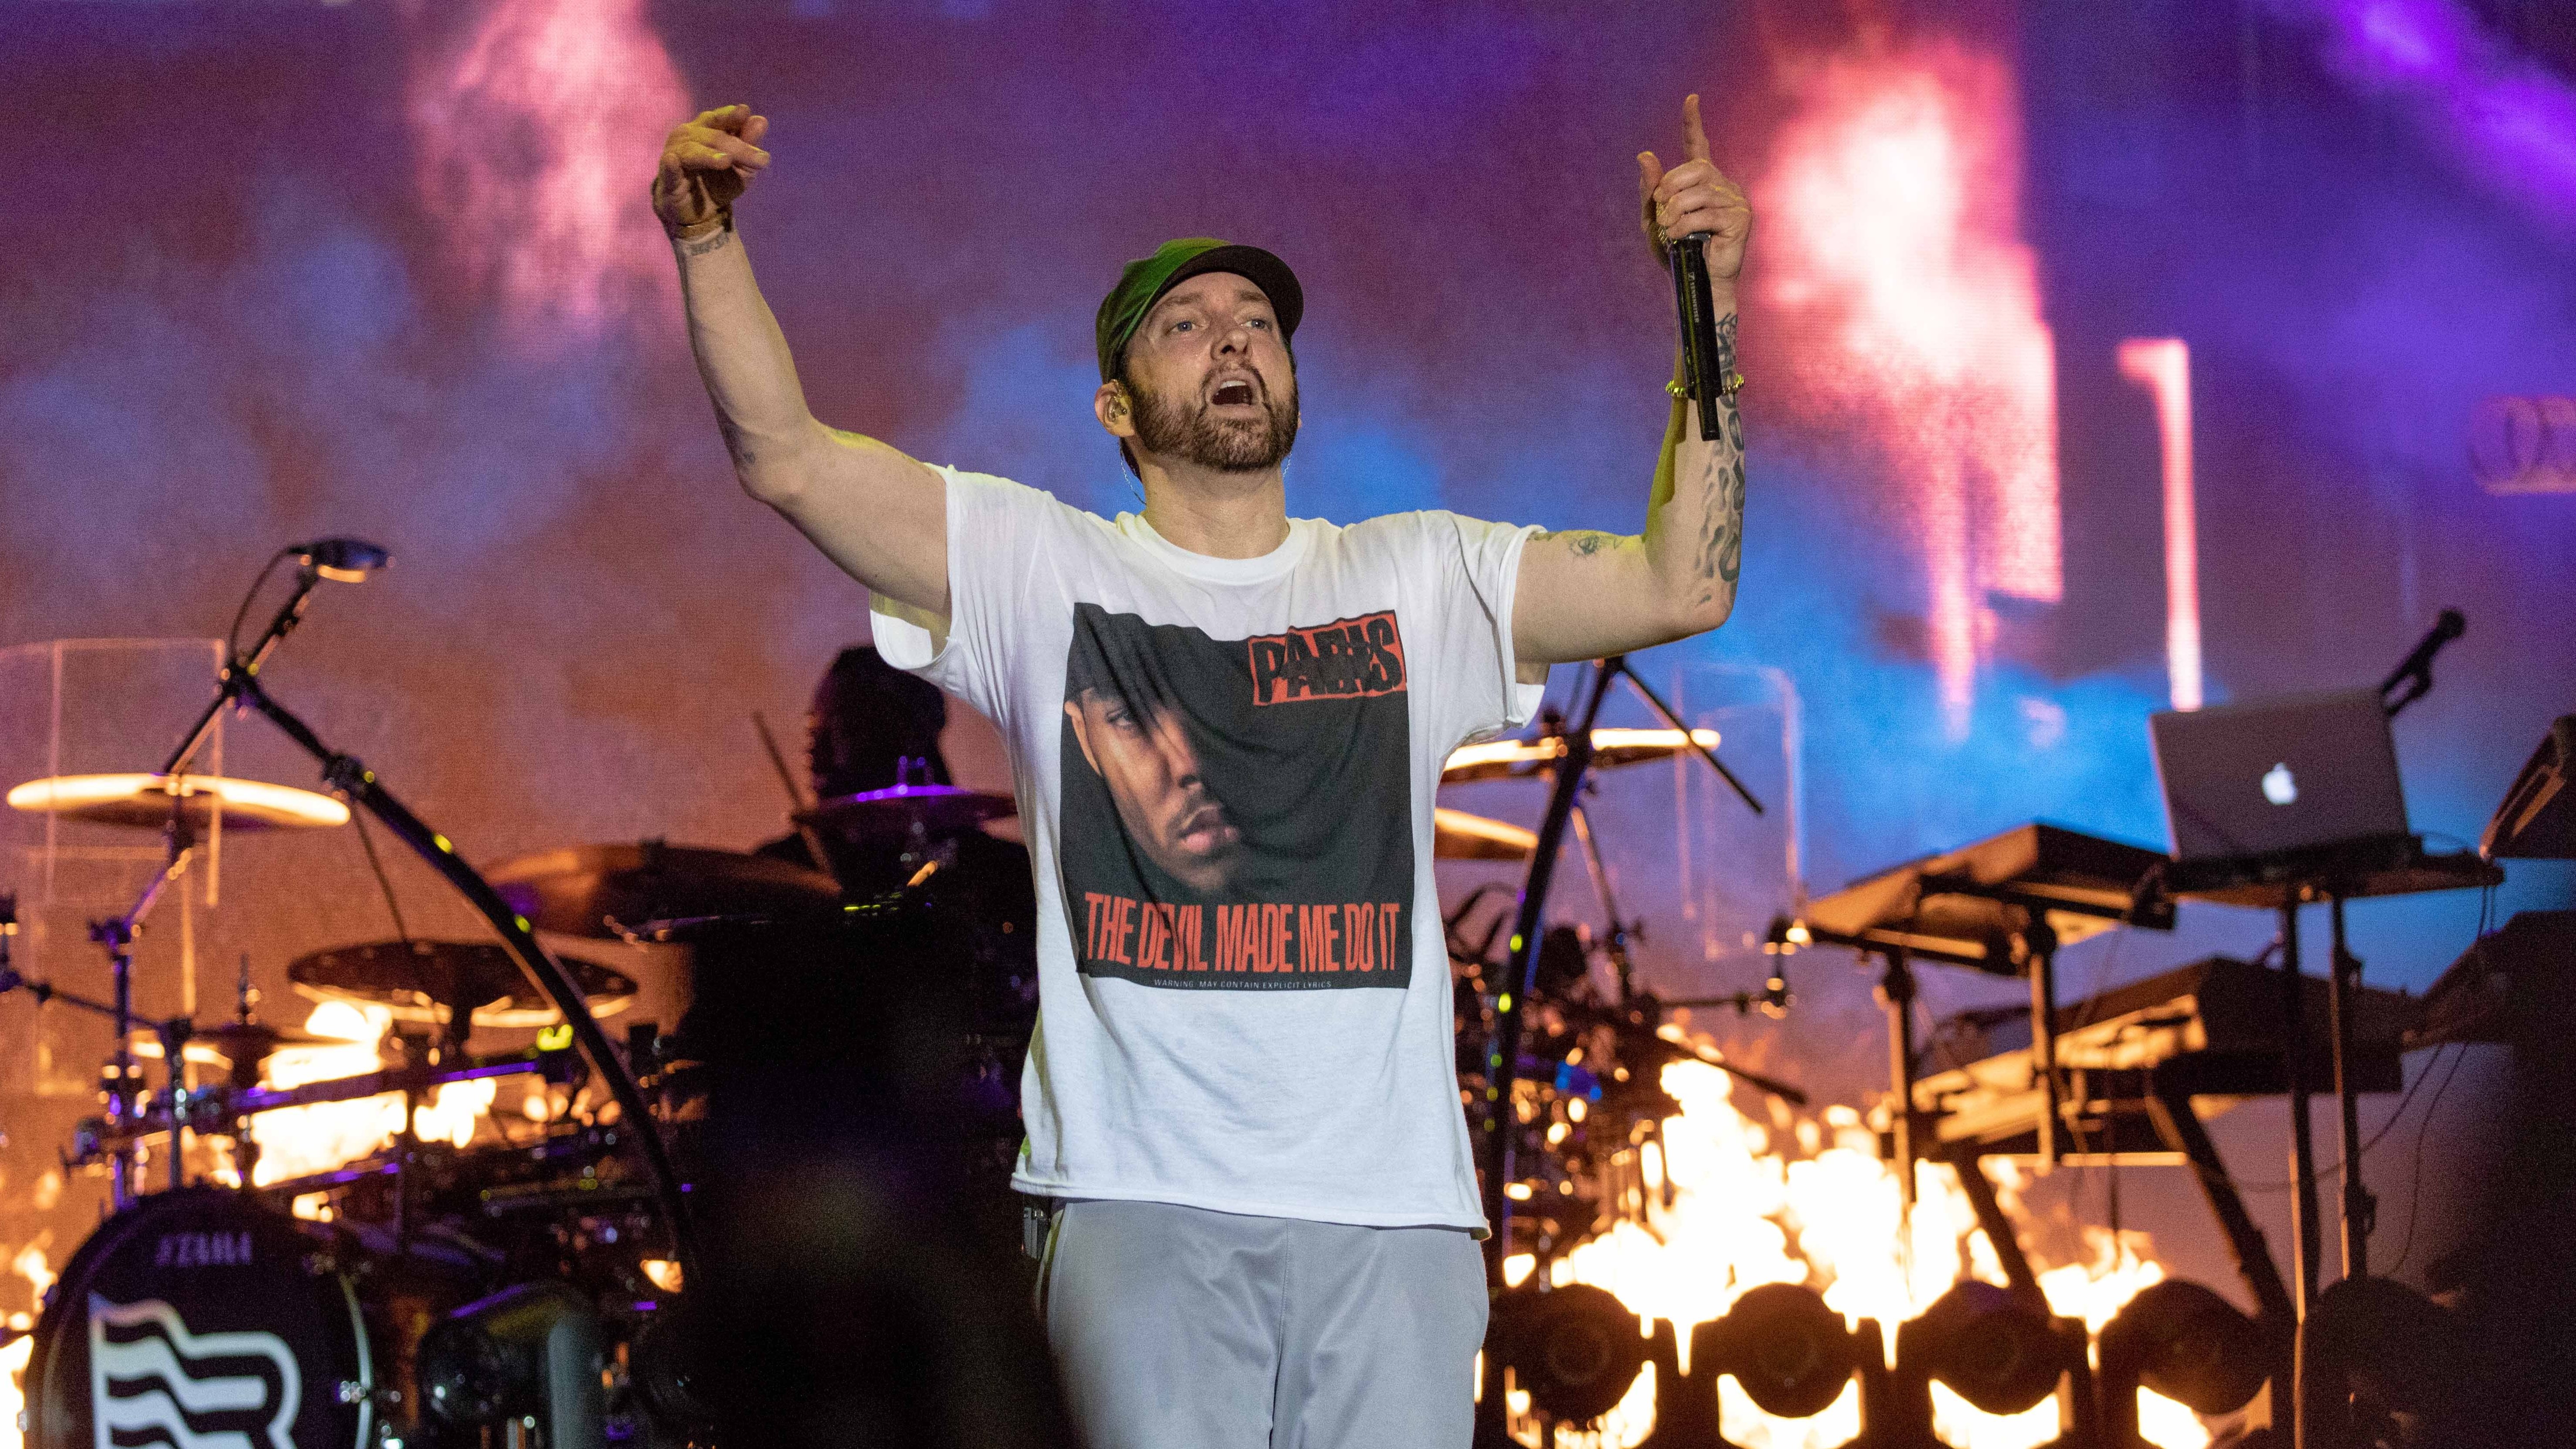 Eminem takes out ad to diss music critics who panned his new album images